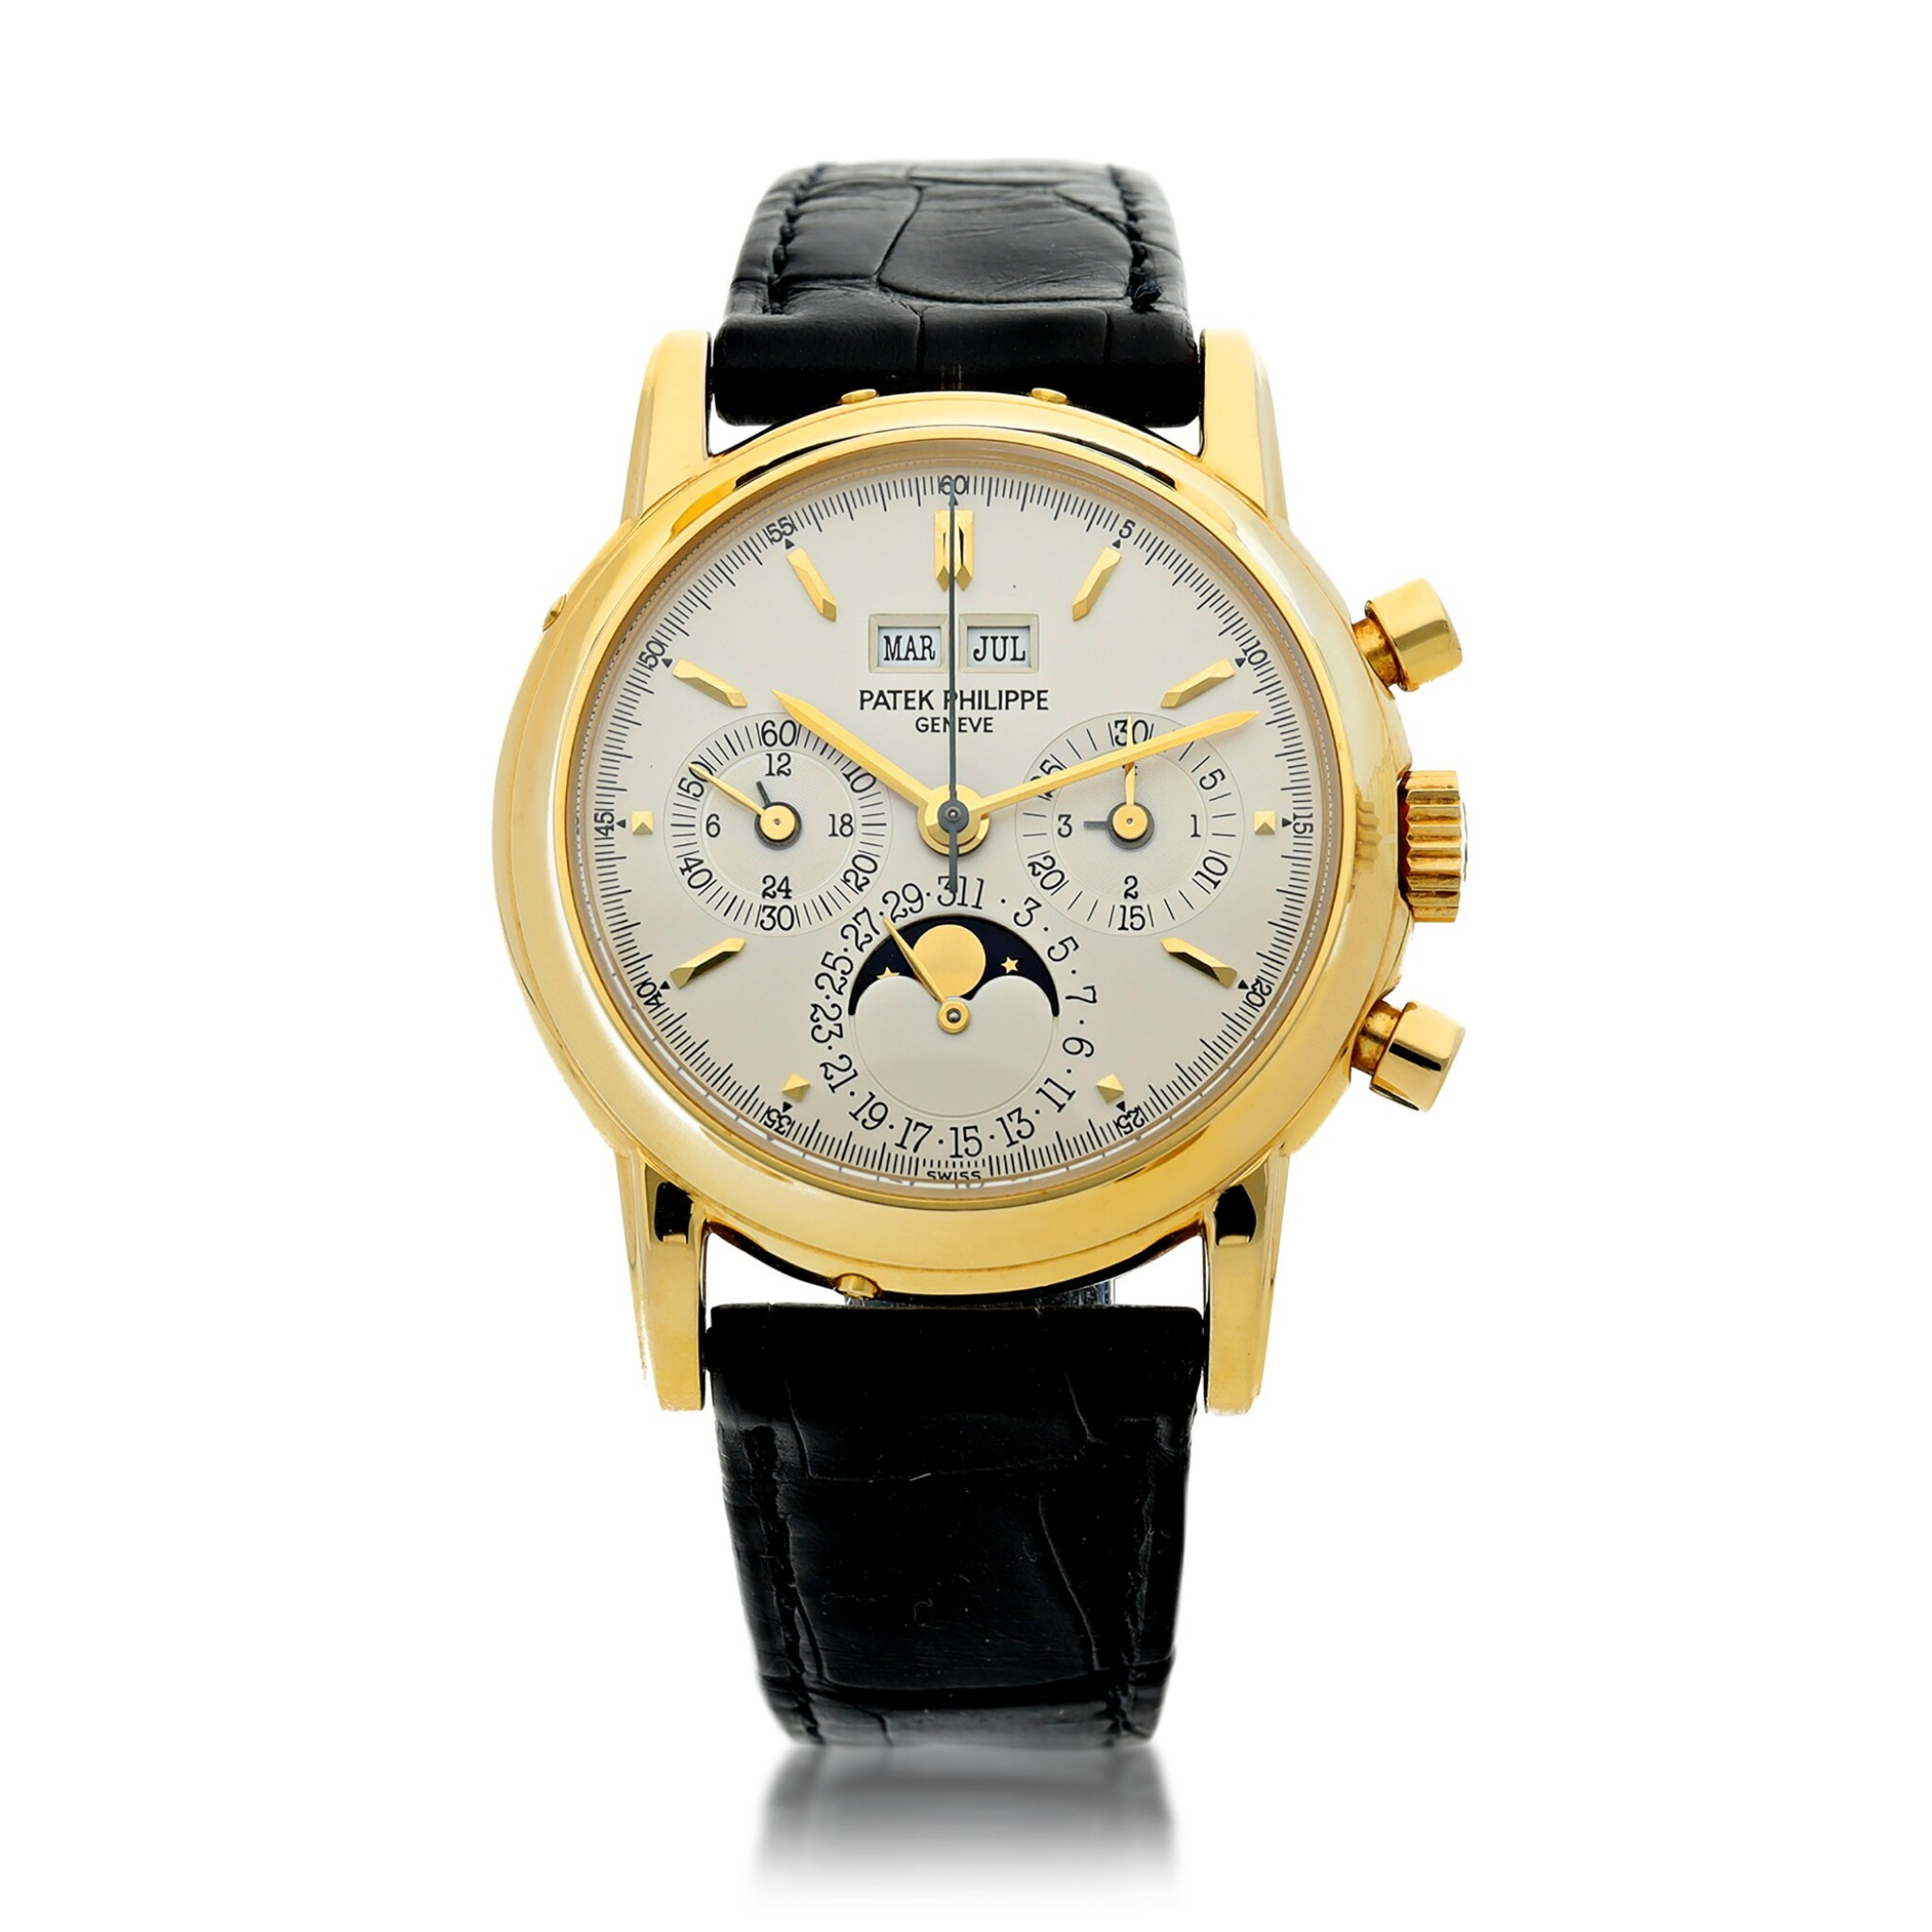 View full screen - View 1 of Lot 30. PATEK PHILIPPE | REFERENCE 3970E  A YELLOW GOLD PERPETUAL CALENDAR CHRONOGRAPH WRISTWATCH WITH MOON PHASES AND LEAP YEAR INDICATION, MADE IN 1992.